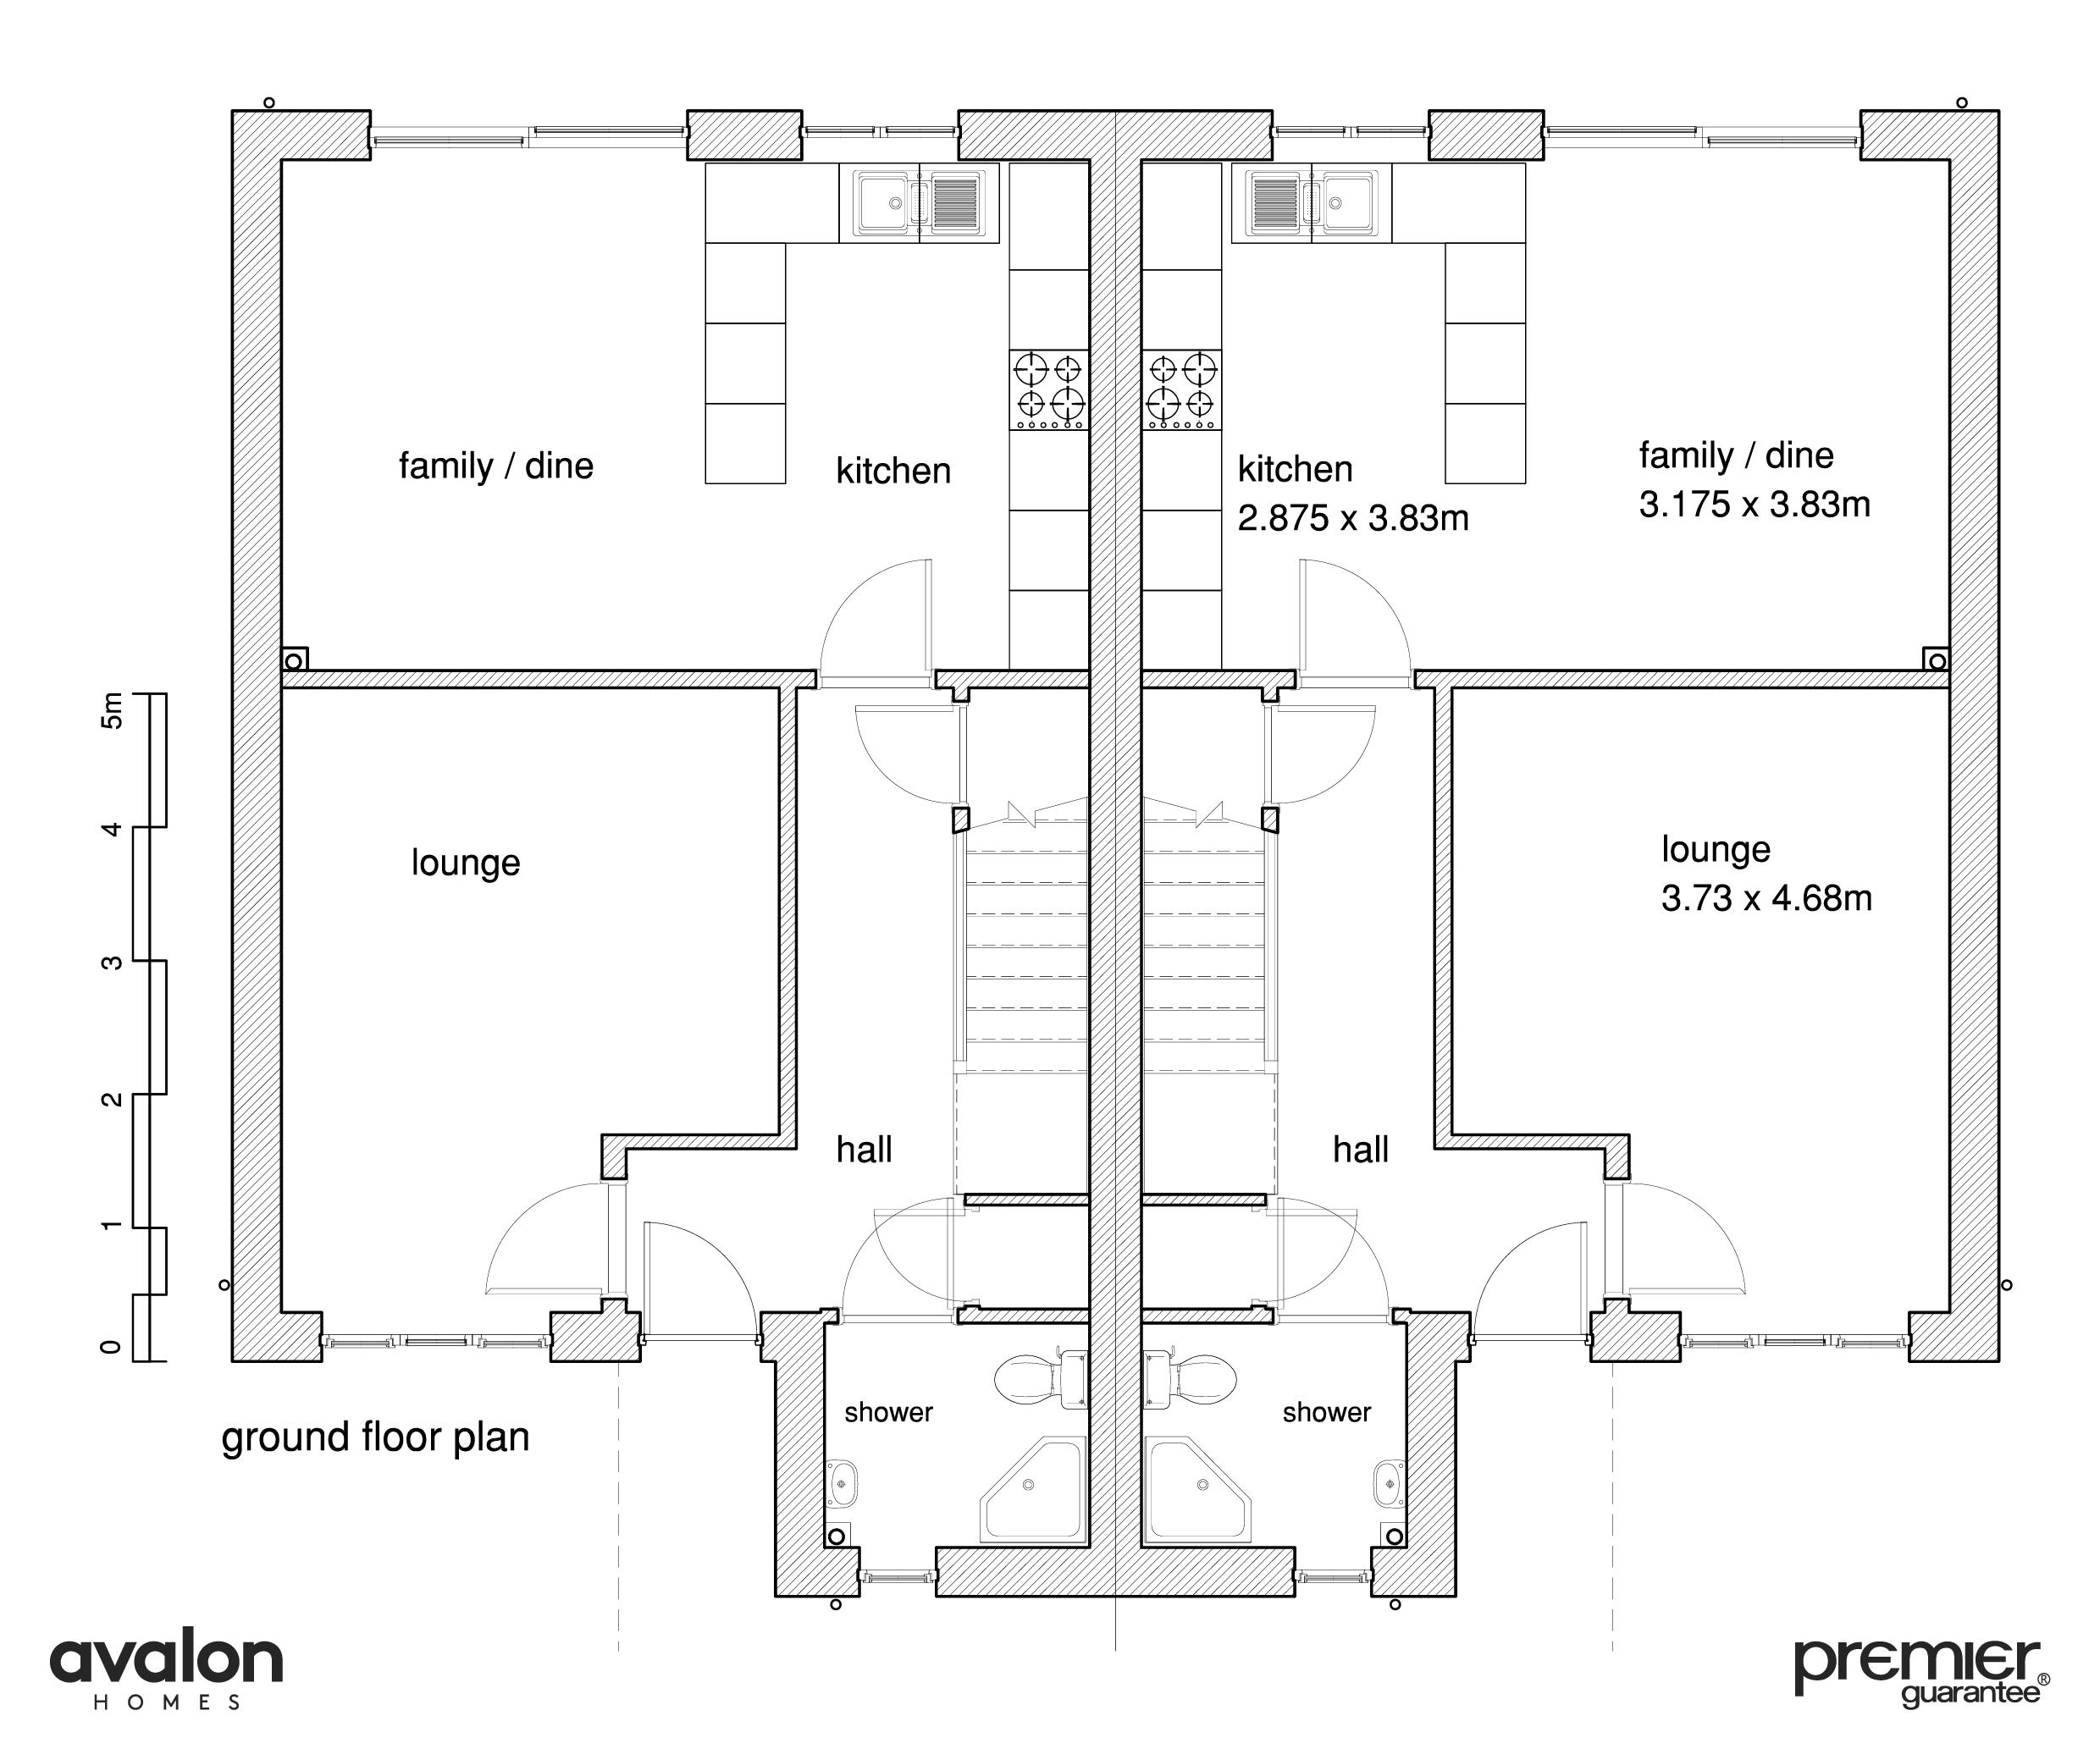 Floor plan ground